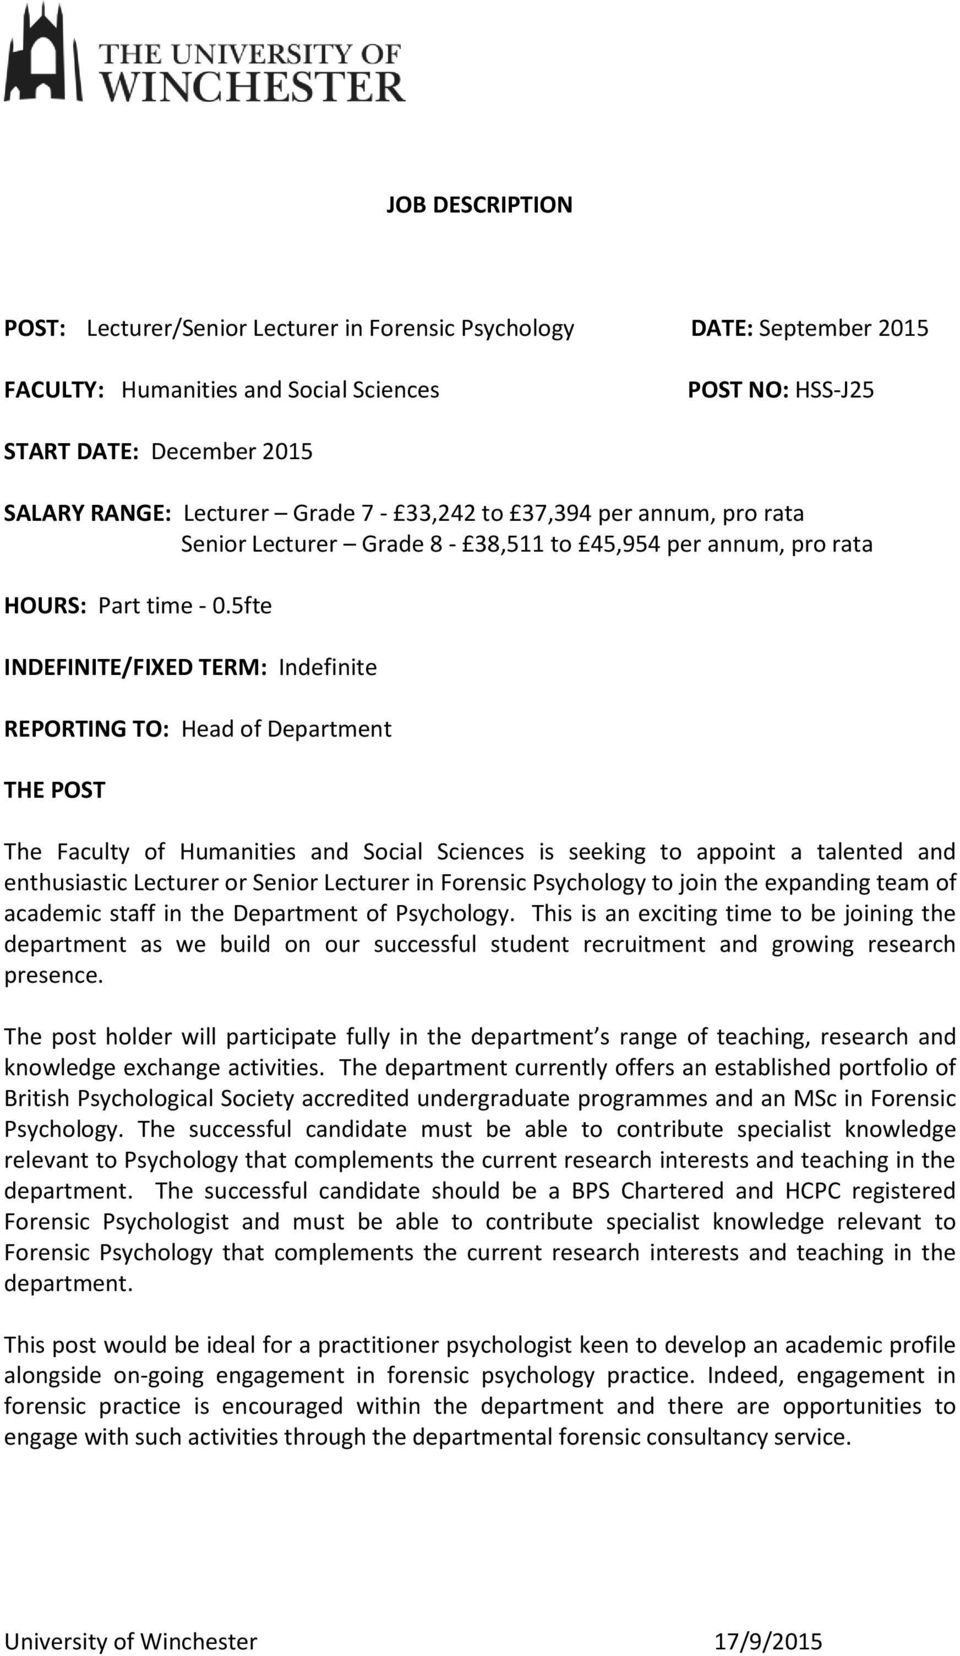 5fte INDEFINITE/FIED TERM: Indefinite REPORTING TO: Head of Department THE POST The Faculty of Humanities and Social Sciences is seeking to appoint a talented and enthusiastic Lecturer or Senior